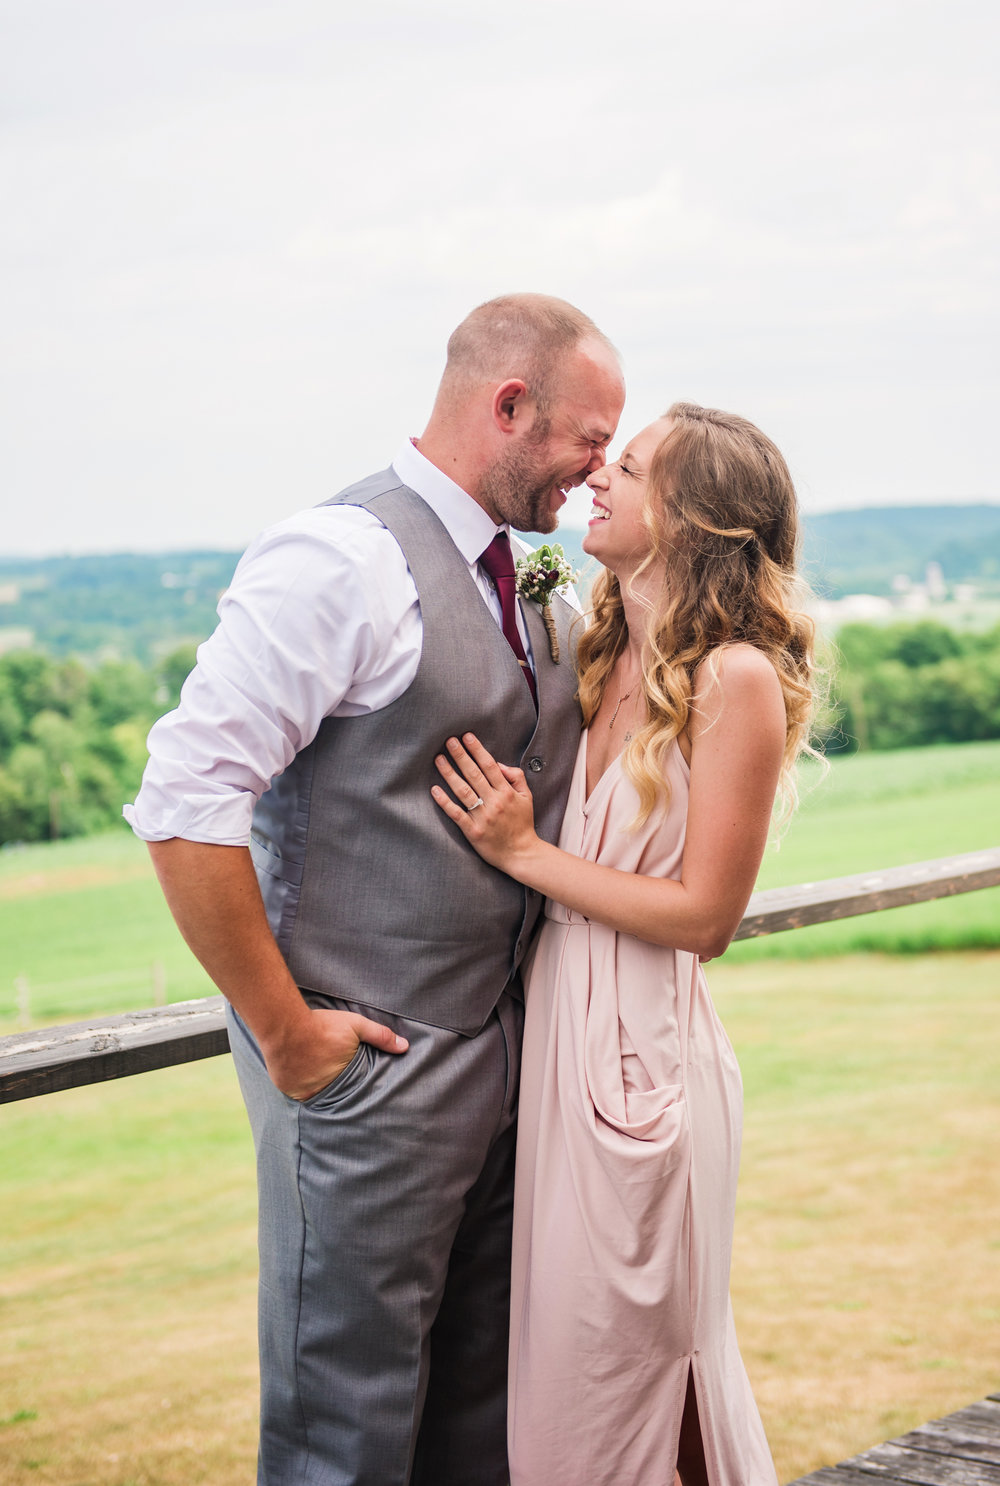 JILLSTUDIO_MKJ_Farms_Central_NY_Wedding_Rochester_NY_Photographer_DSC_8549.jpg